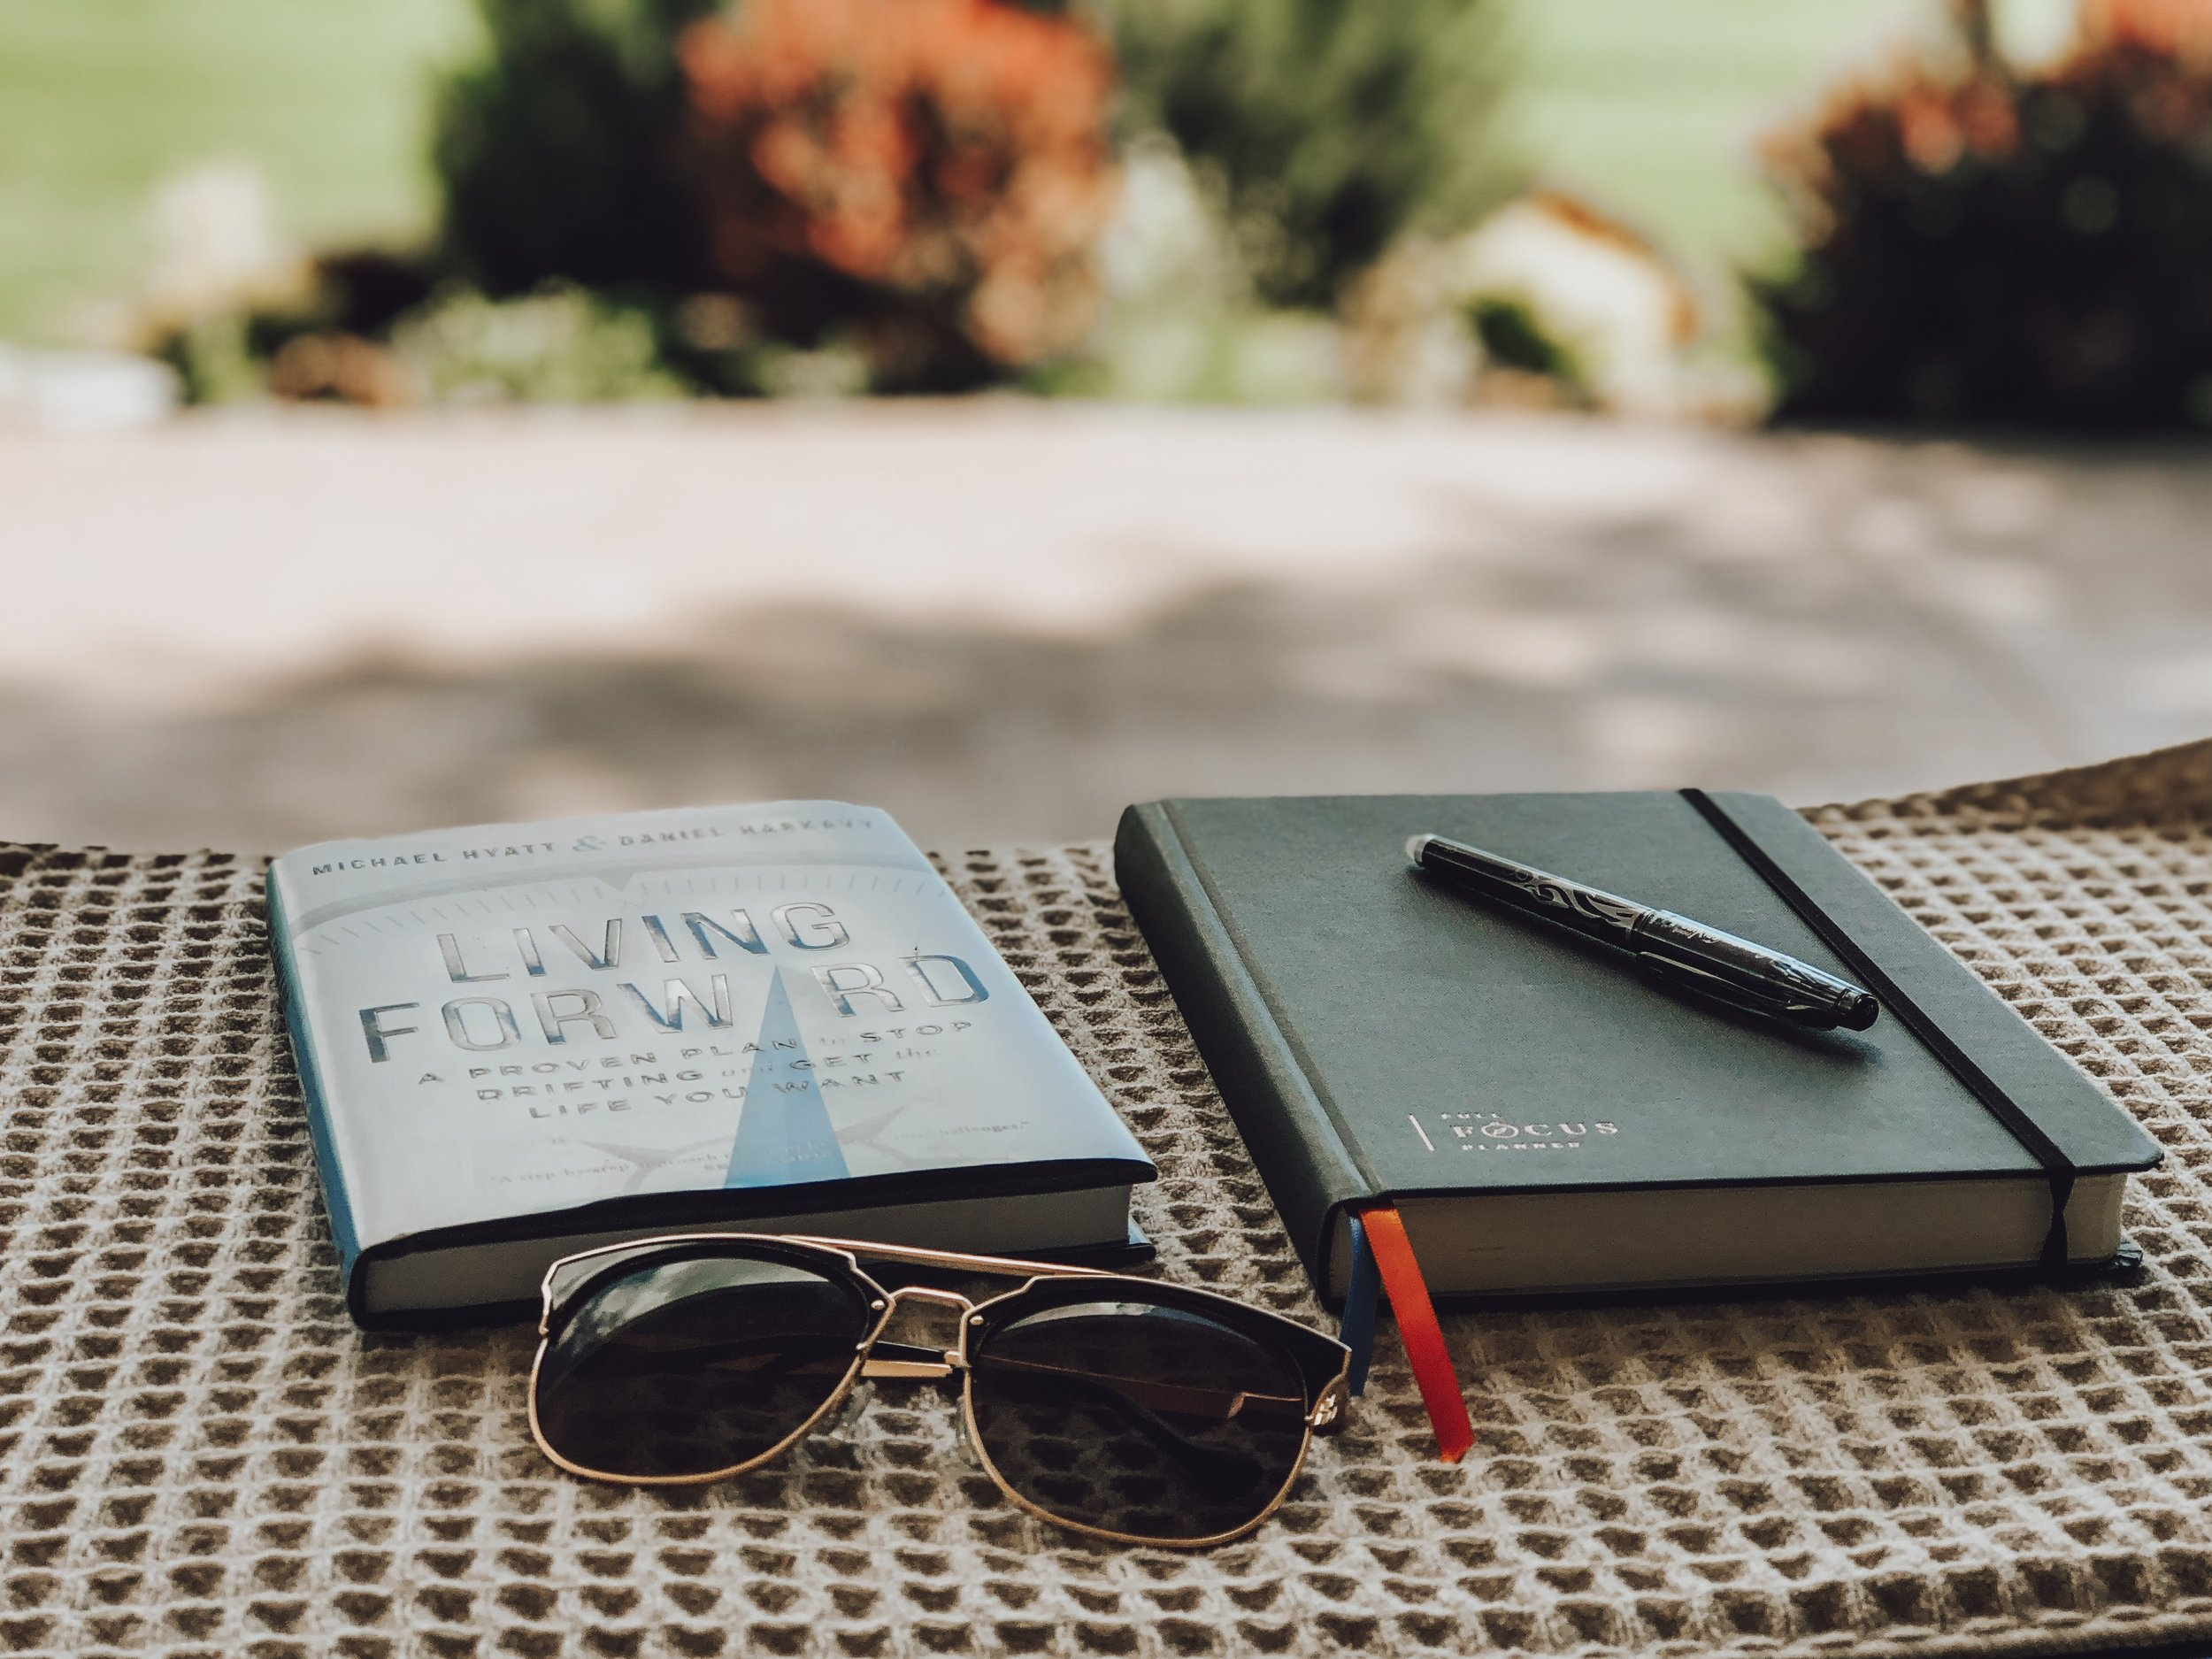 The Planner That Changed My Life - Learn Why ➝